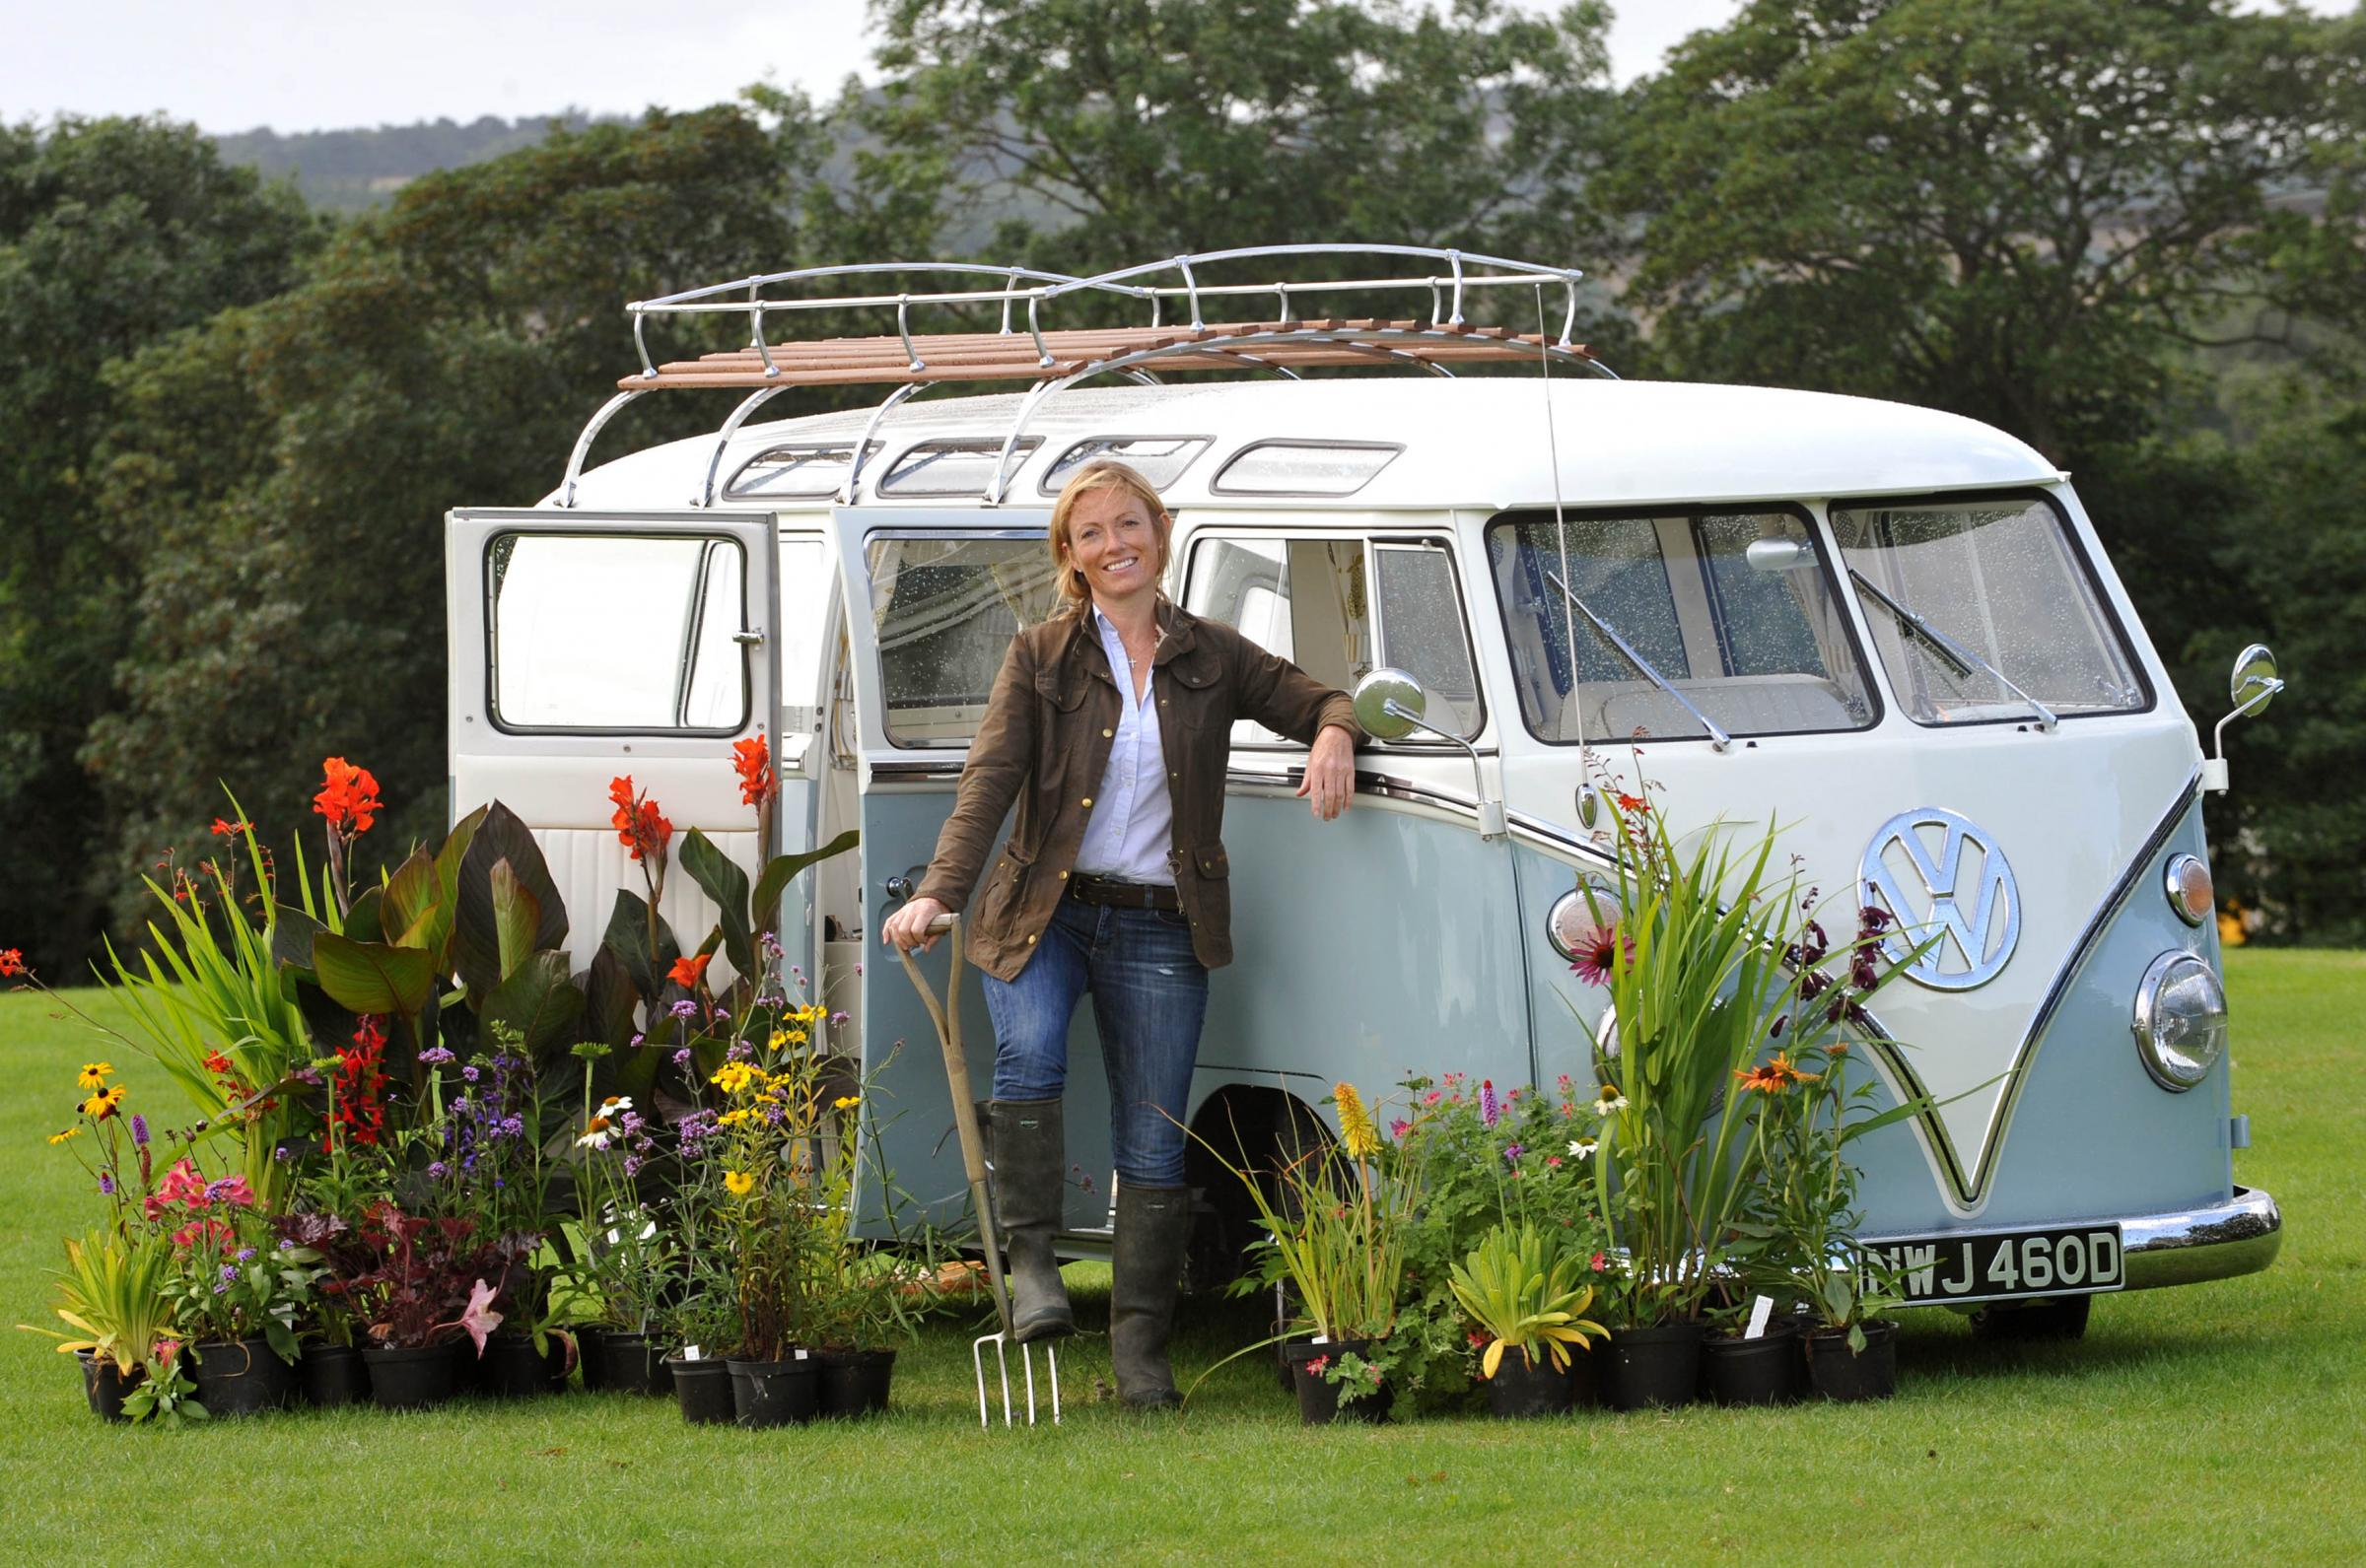 FLOWER POWER: Susanne Guthrie with her campervan Roxy at the Great Yorkshire Showground.